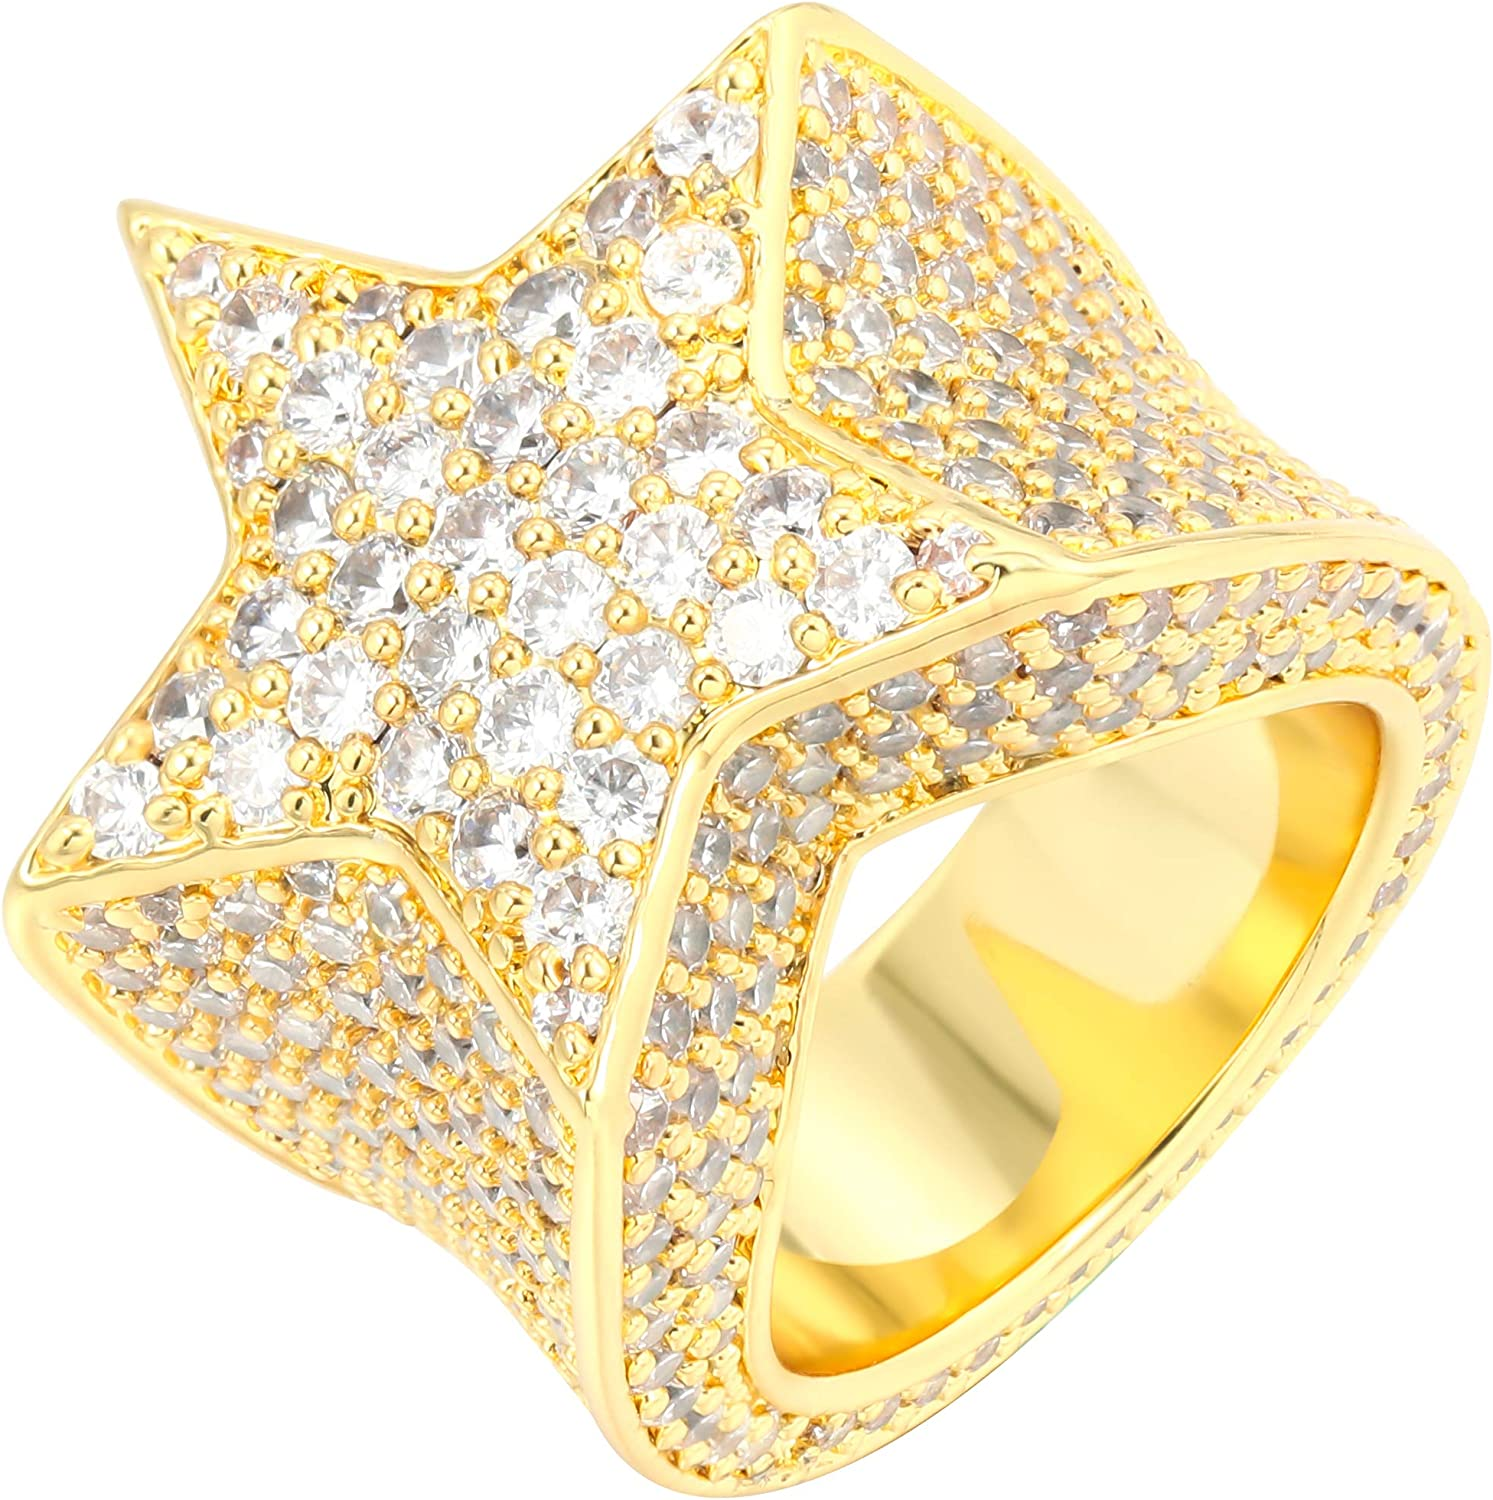 Iced Out Star Pinky Ring-18K Gold,Rose Gold or White Gold Plated Bling Bling Jewelry-Hip Hop 5A+ Star Ring for Men Women